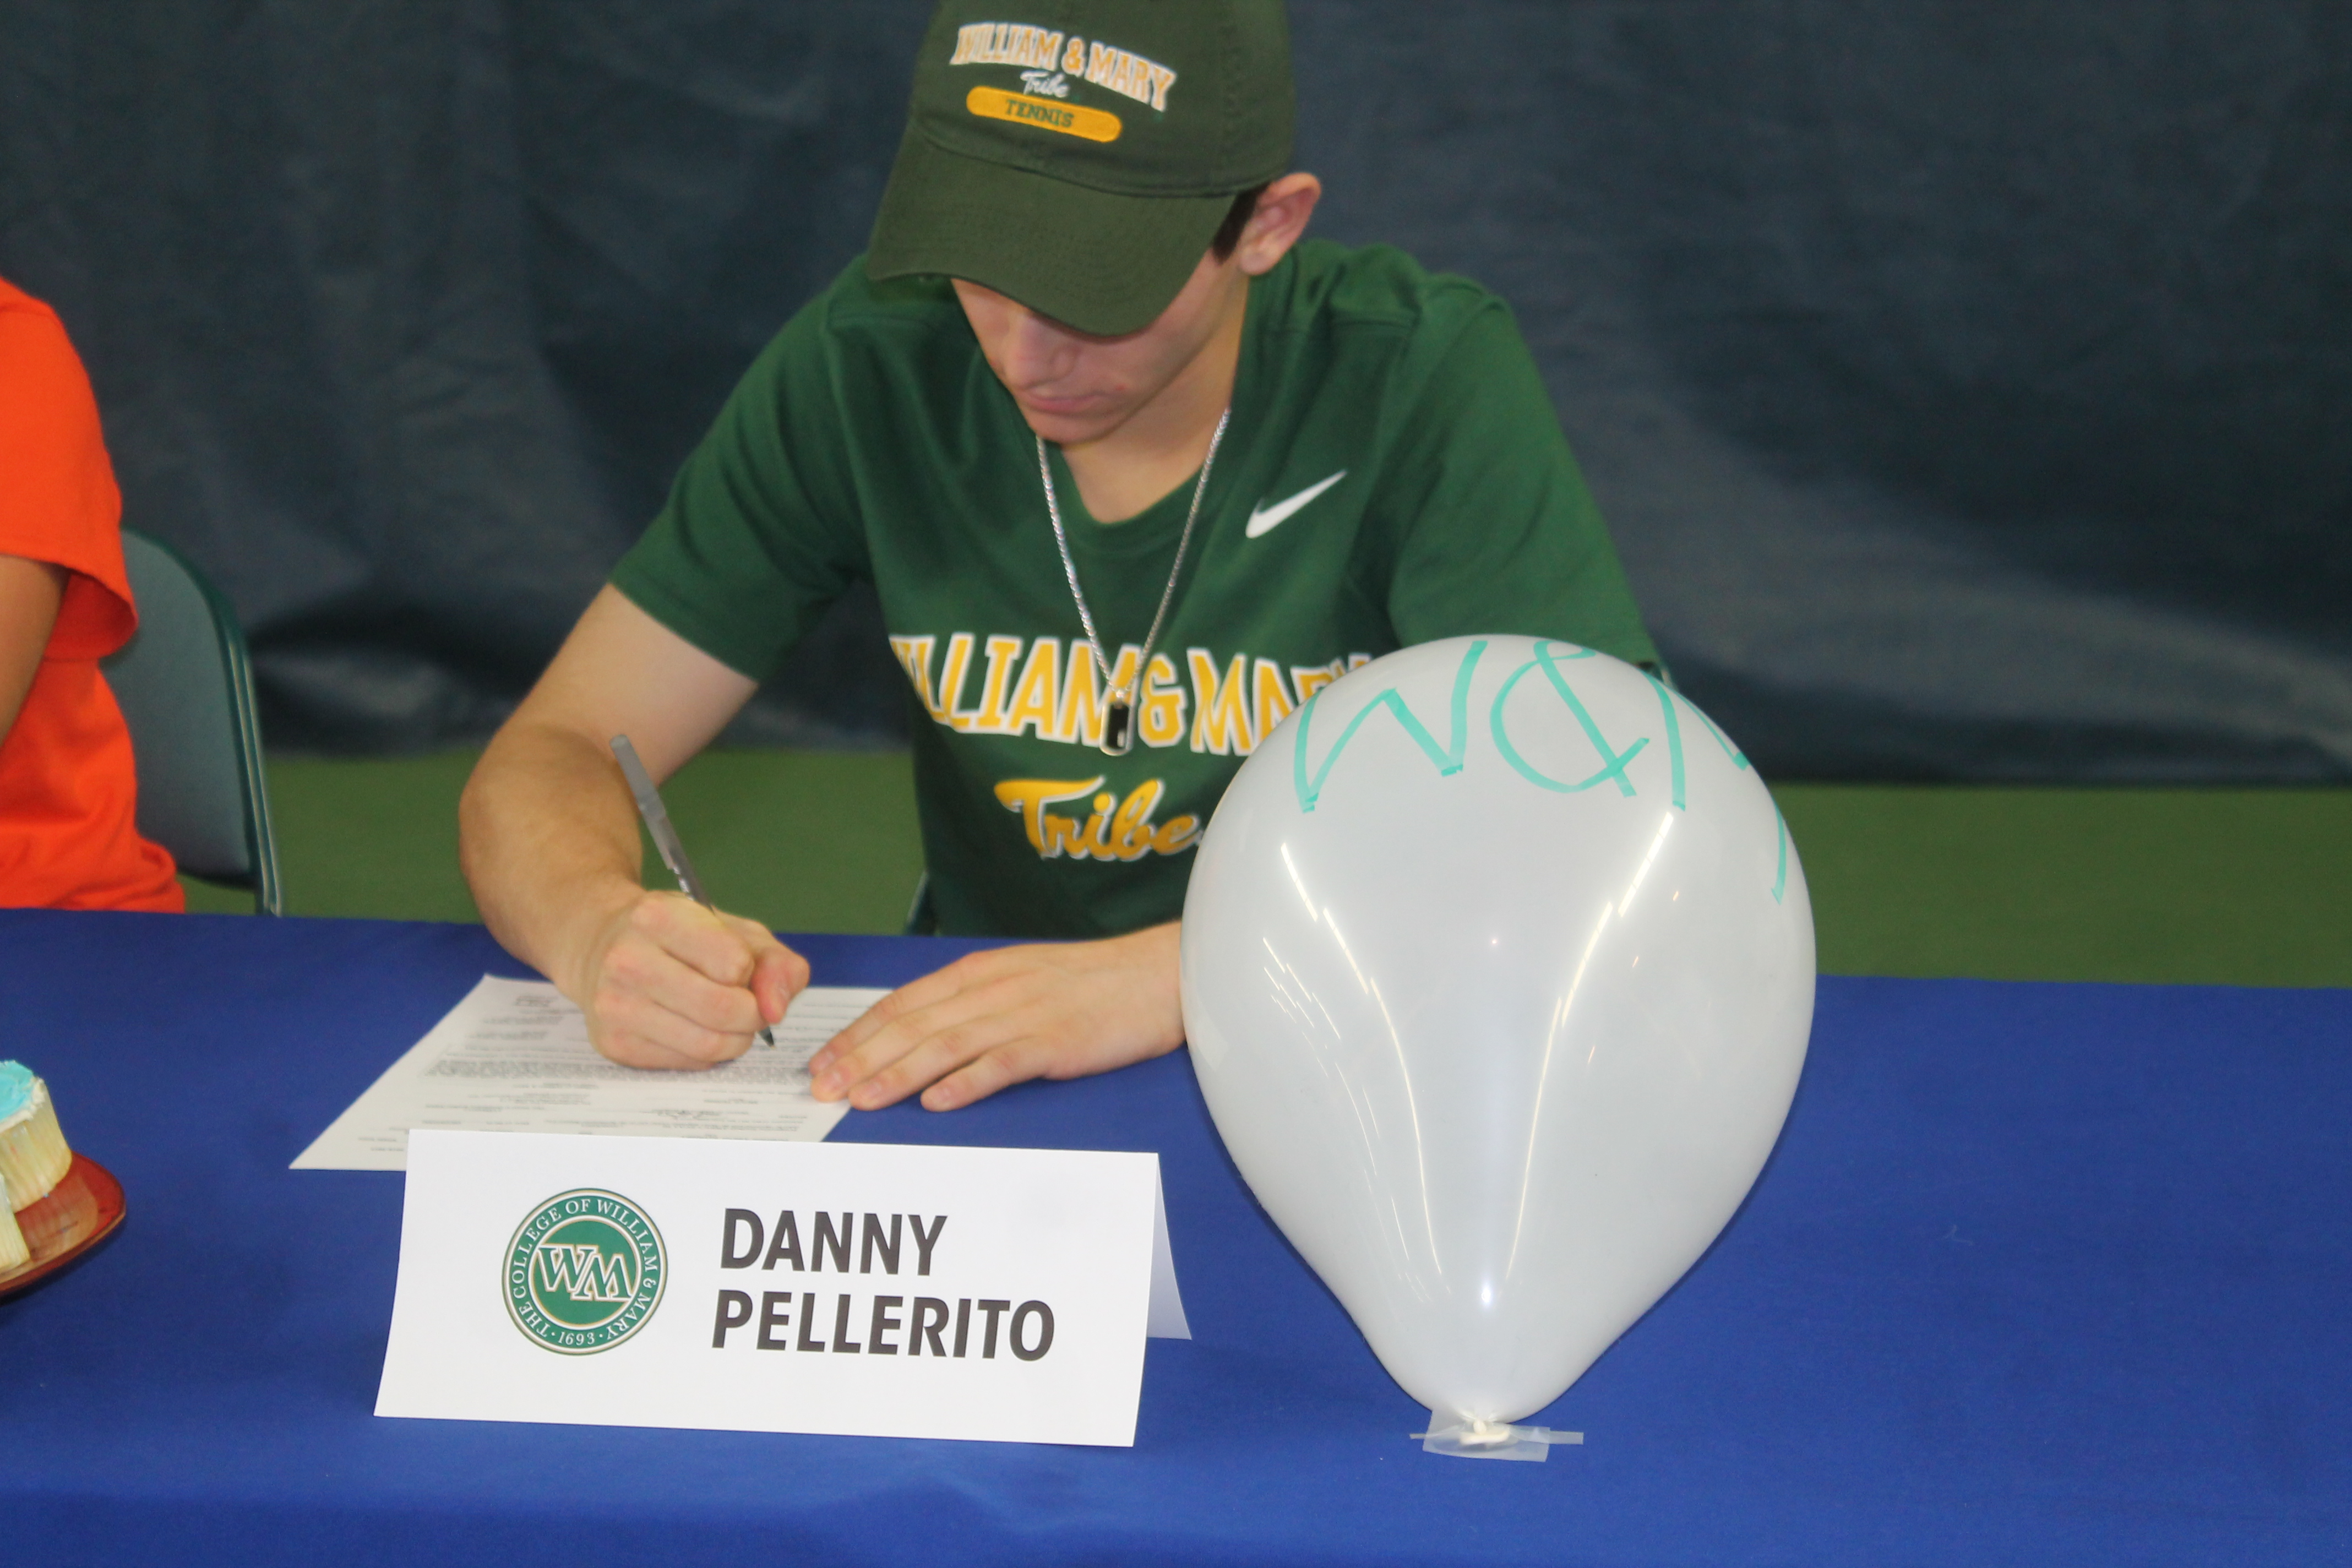 Next fall, William & Mary will have a new addition to its roster when Daniel Pellerito steps onto the school's Williamsburg, Va. campus for his freshman season